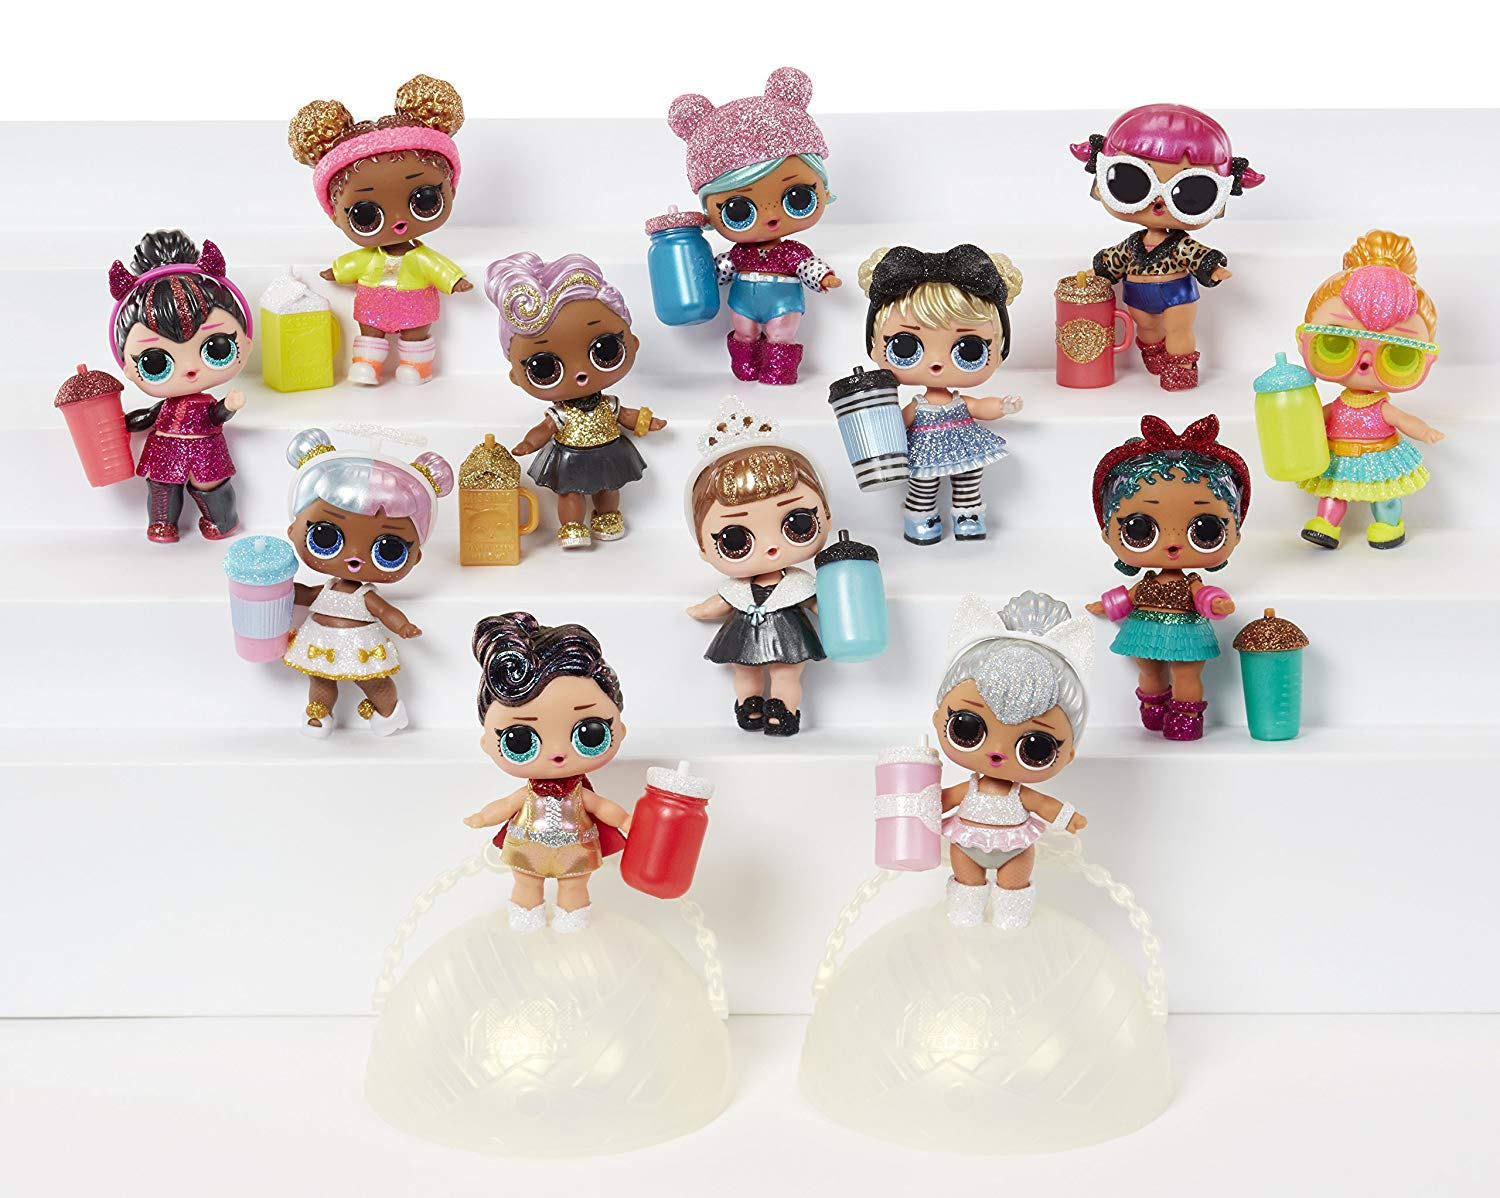 1.L.O.L. Surprise! Glam Glitter Series Doll with 7 Surprises